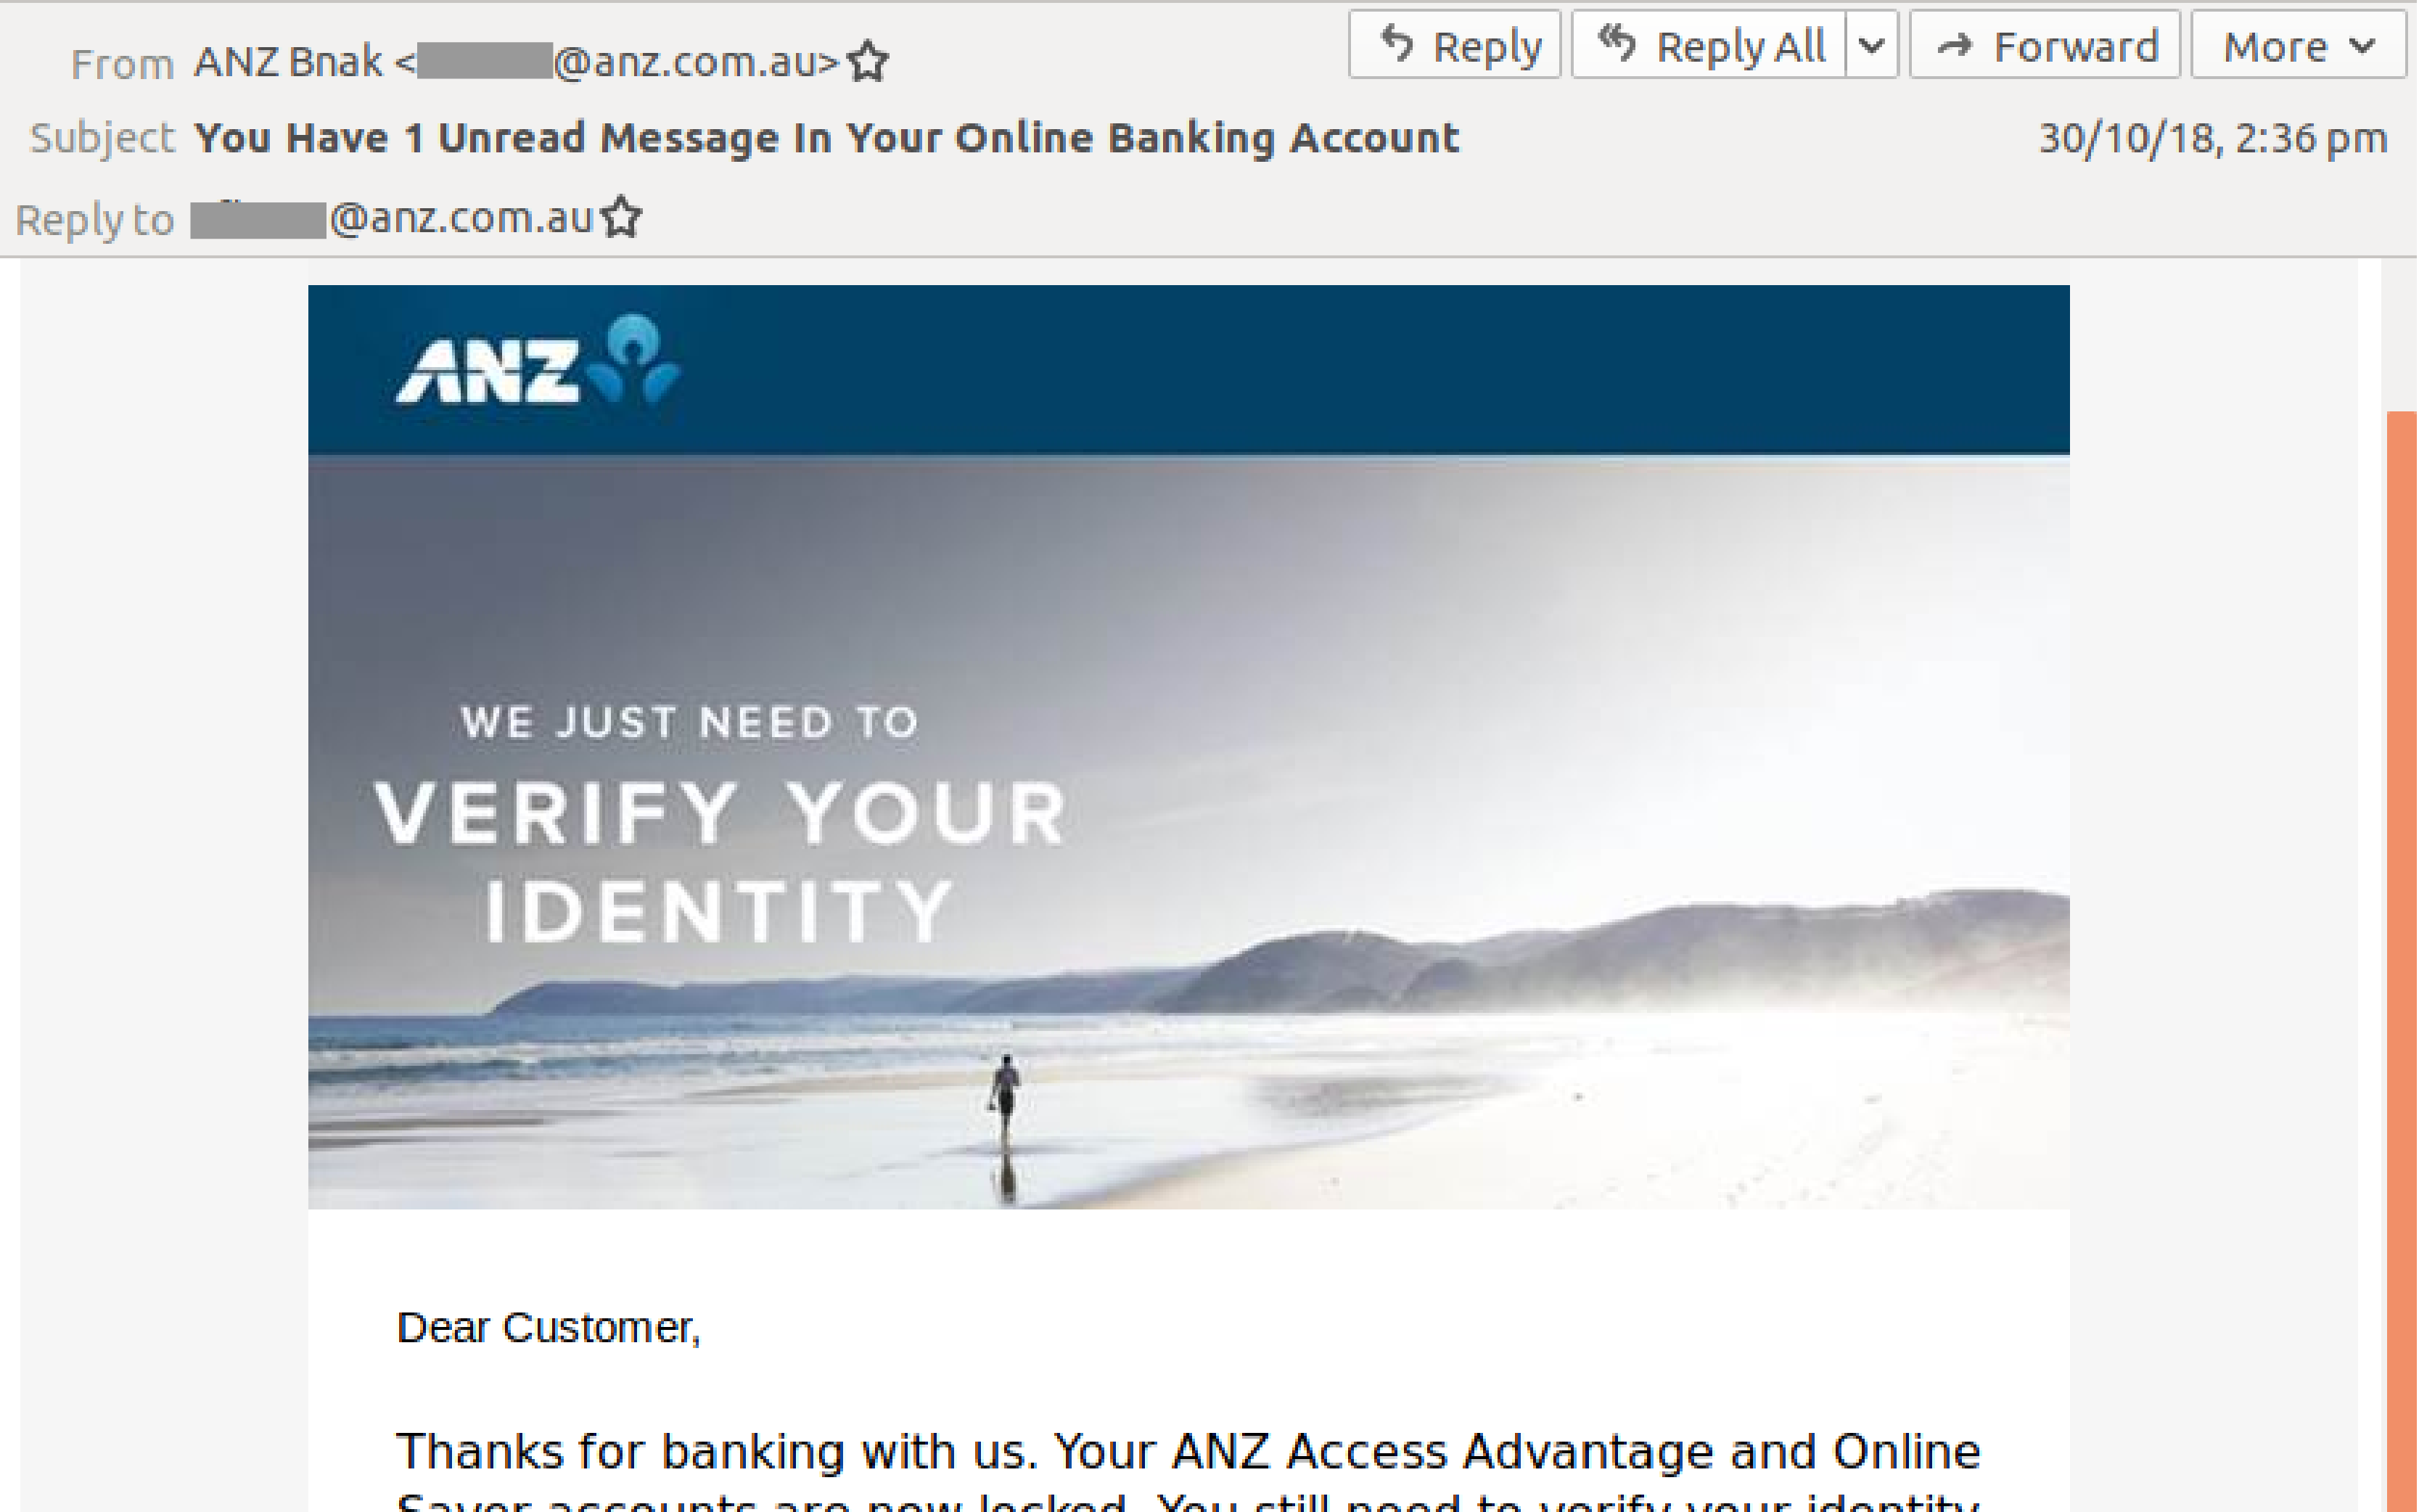 ANZ Edited Email Scam